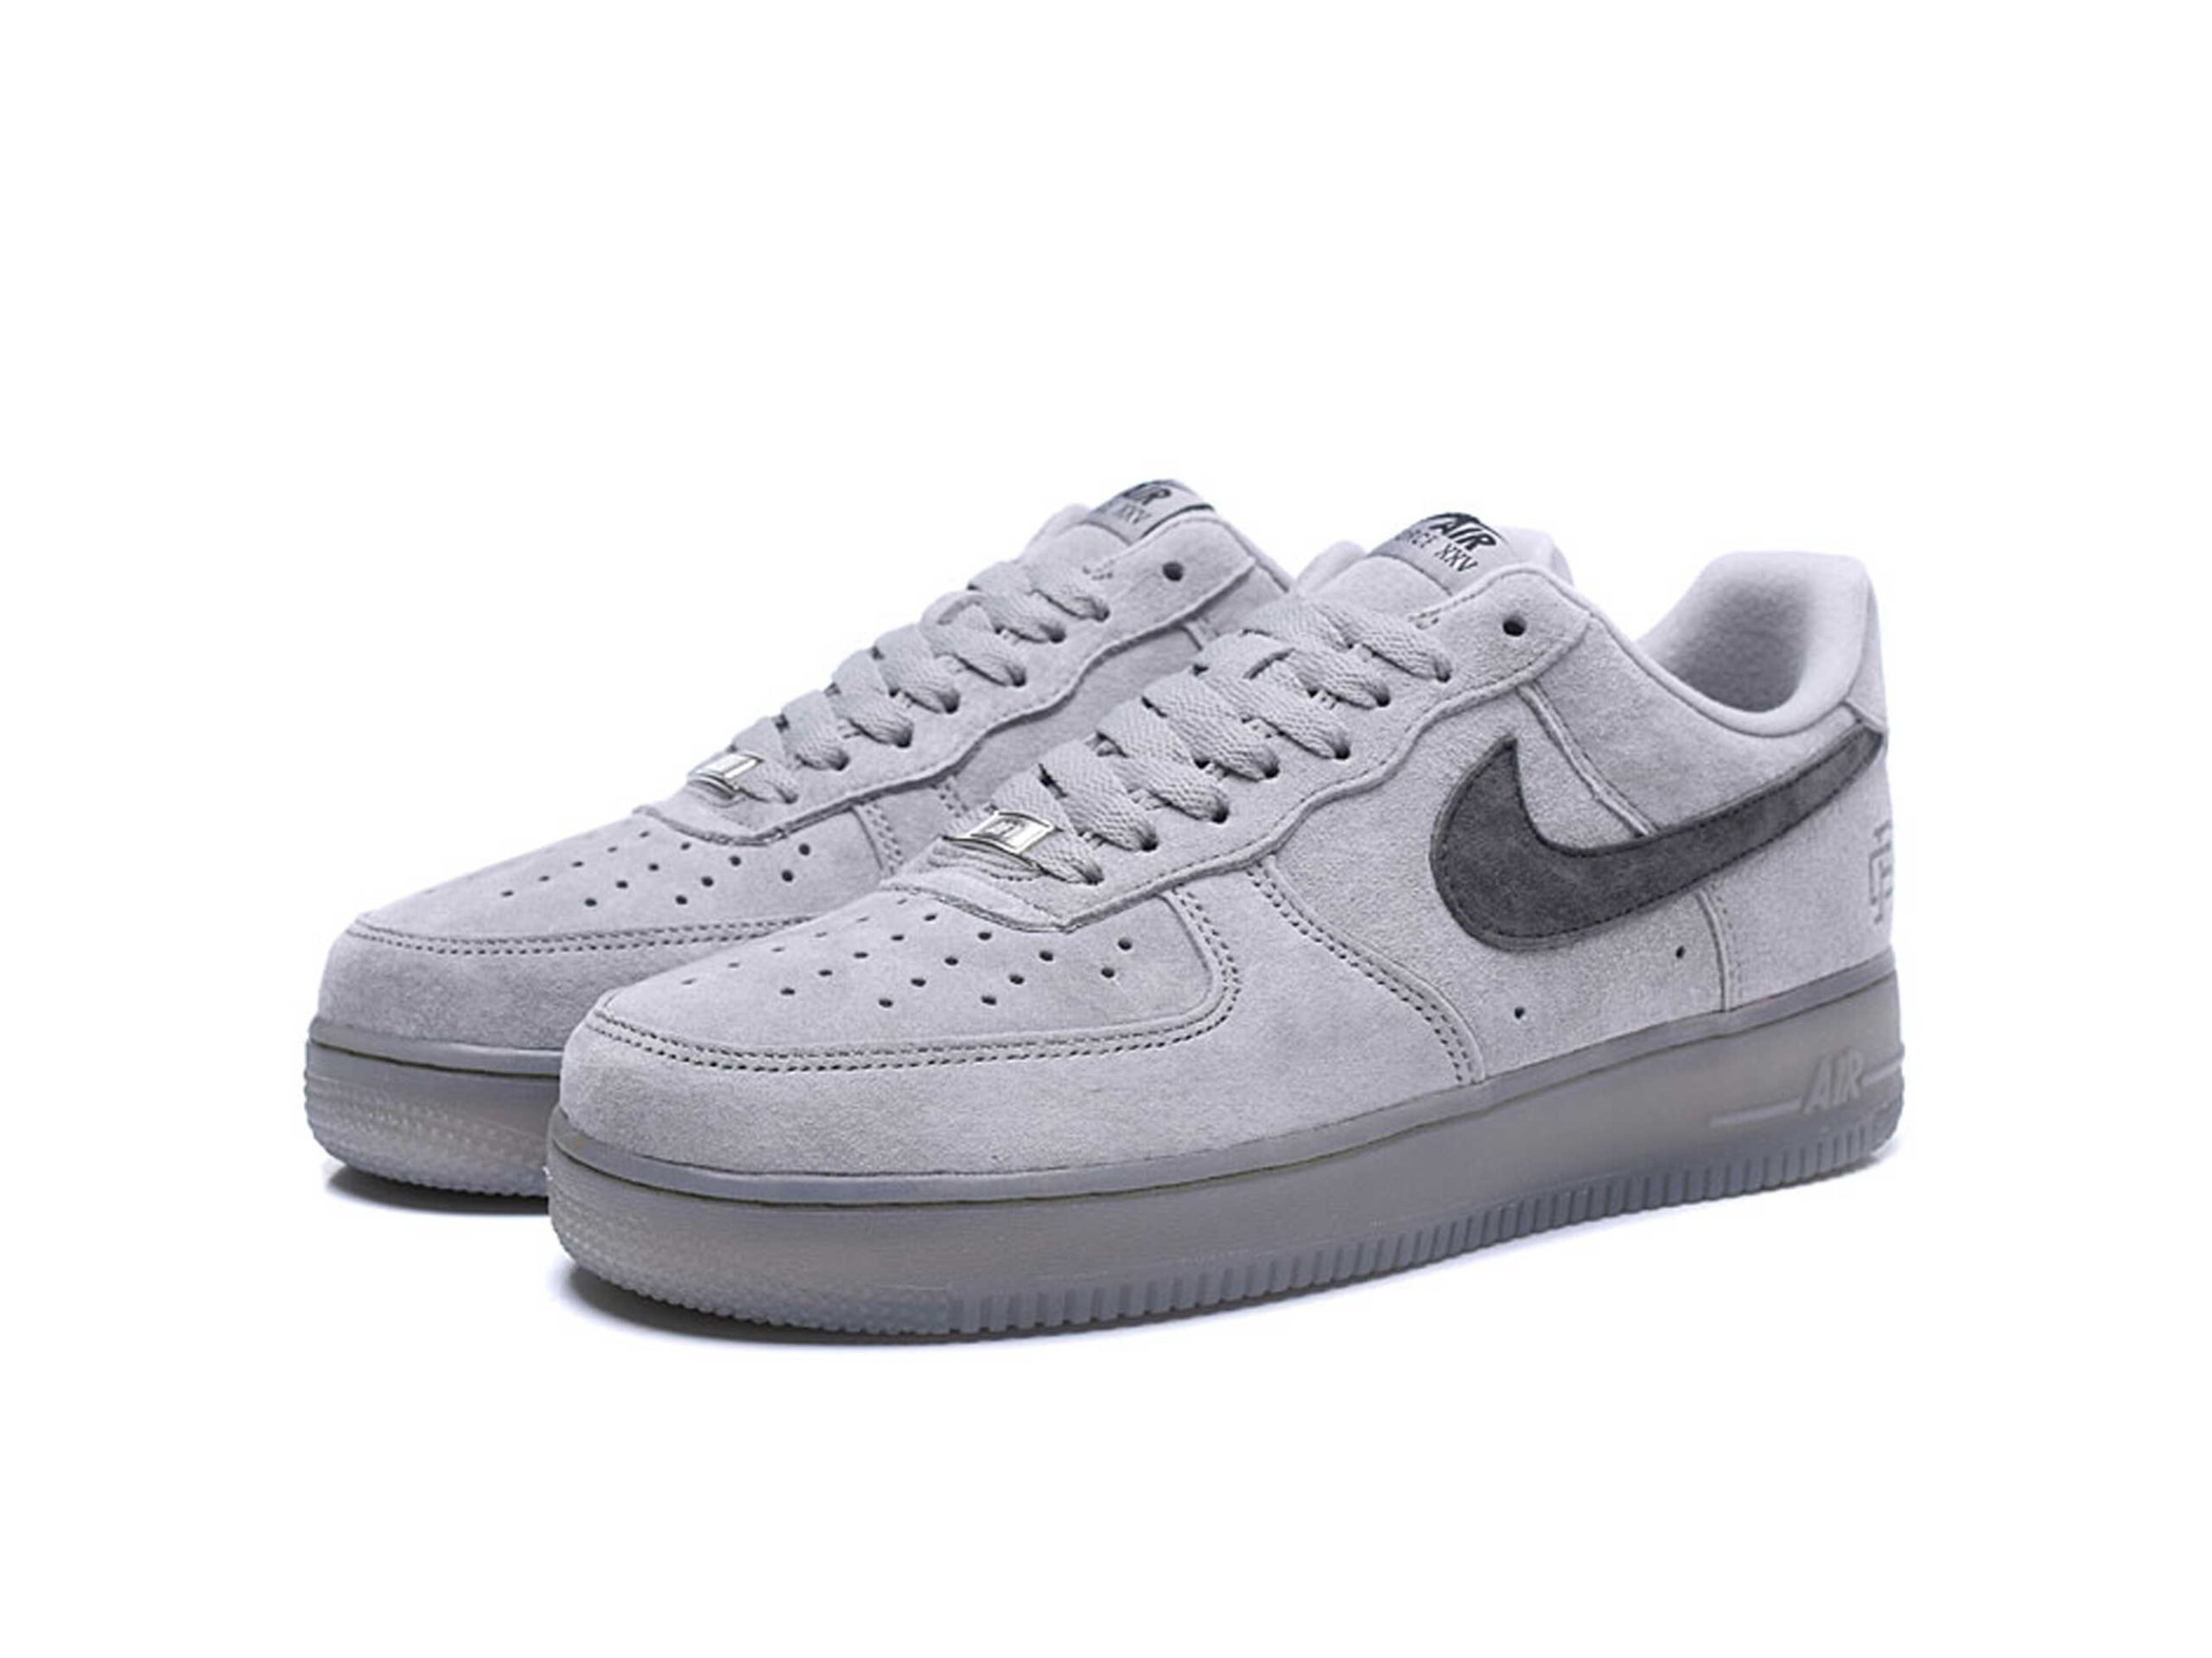 nike air force 1 low grey x Reigning